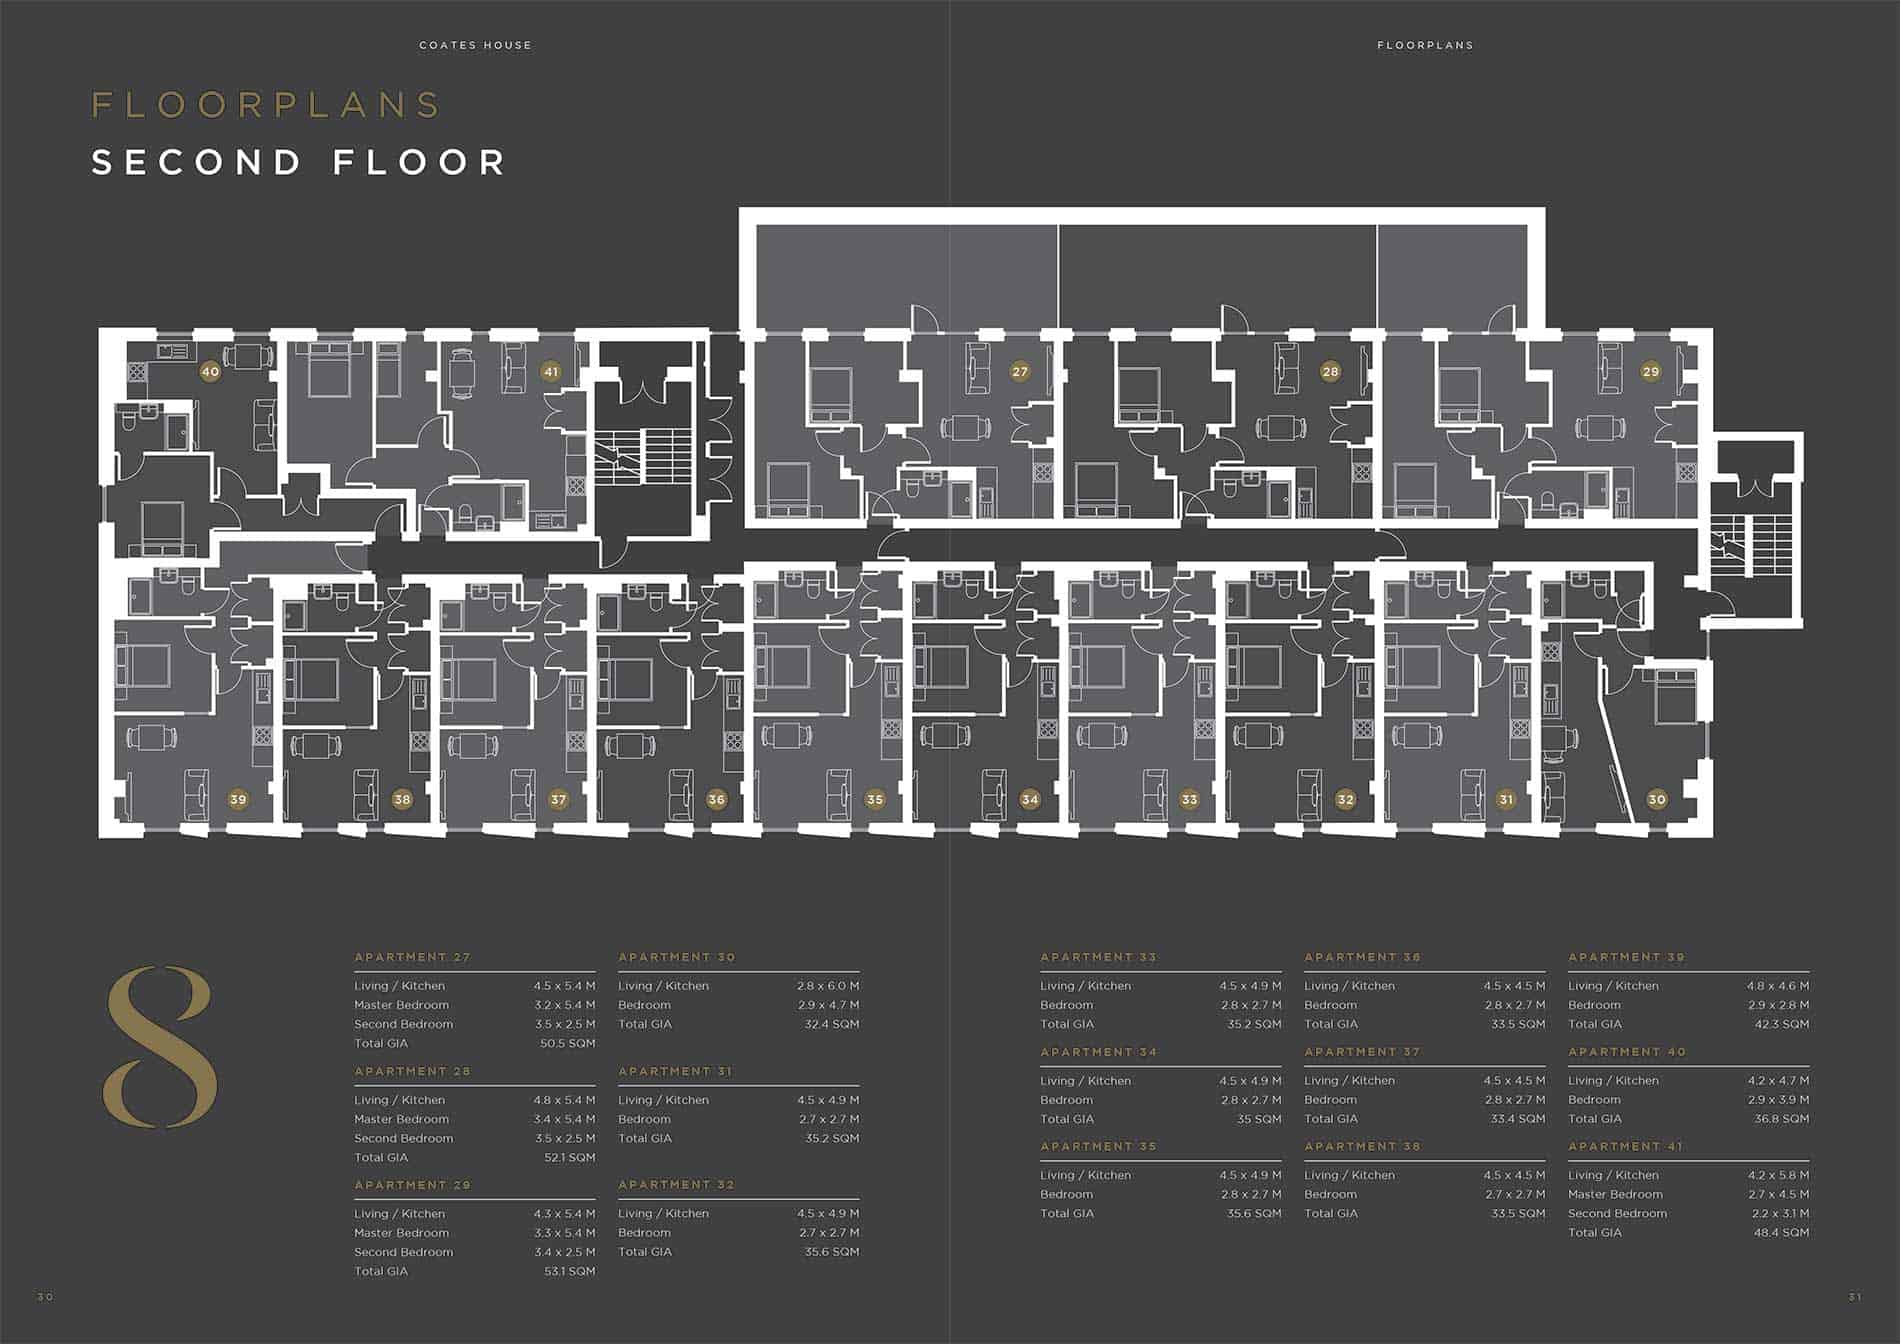 Coates House Bristol UK: Ocea Second Floorplan Commercial to Residential Property Conversion Apartment